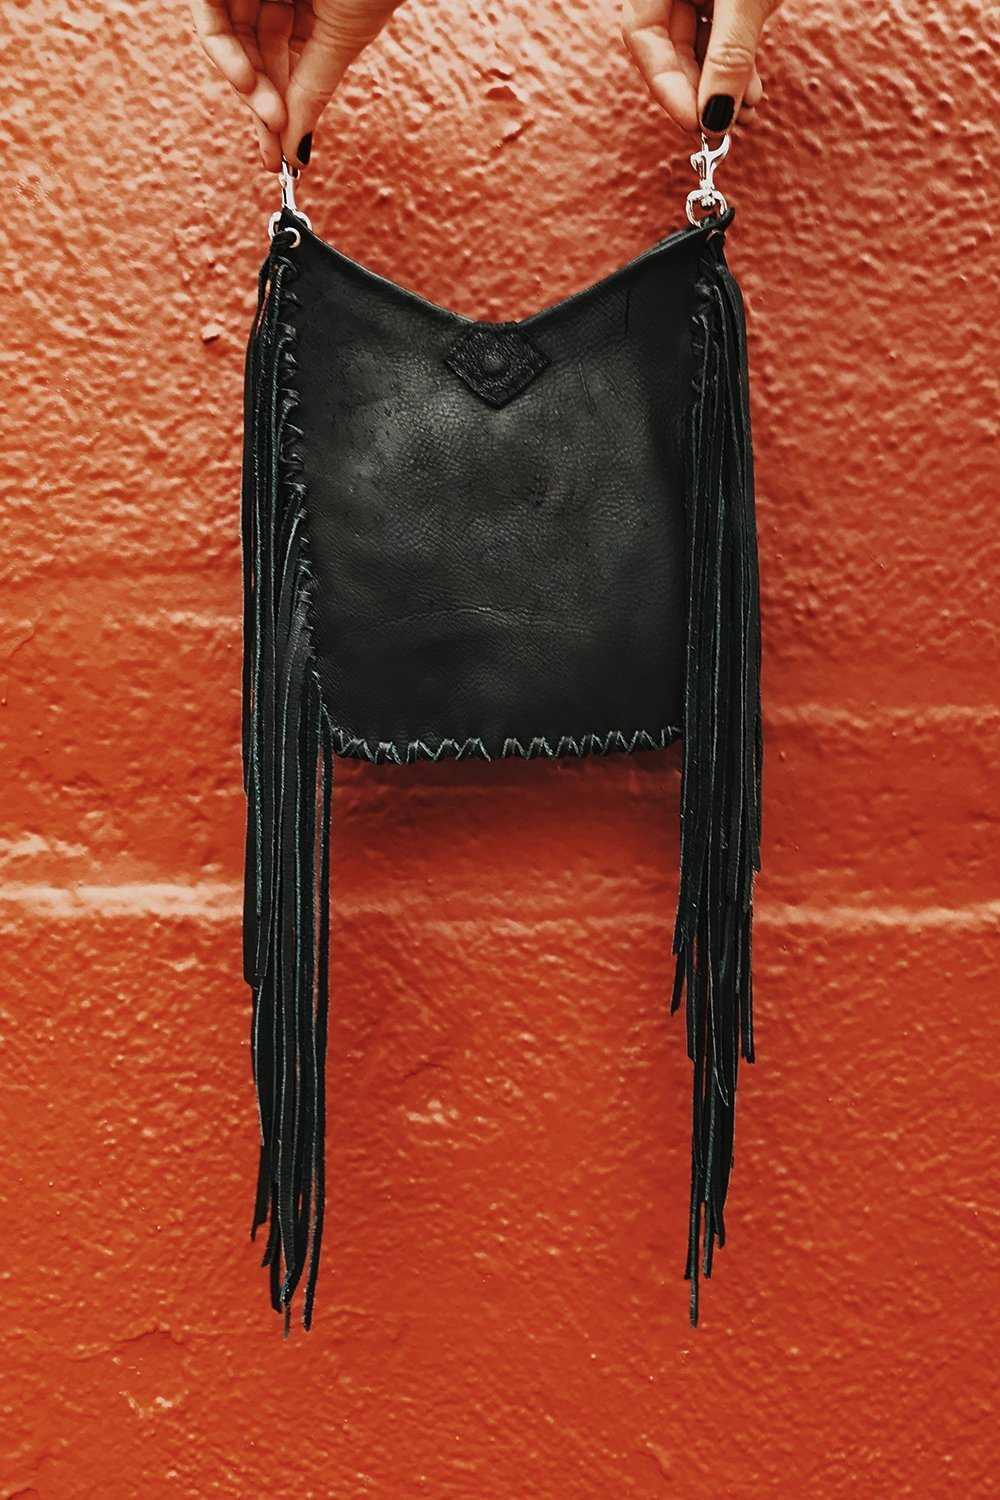 Goat Herder Clip On Fringe Belt Bag Handcrafted by Black Wolff Leather